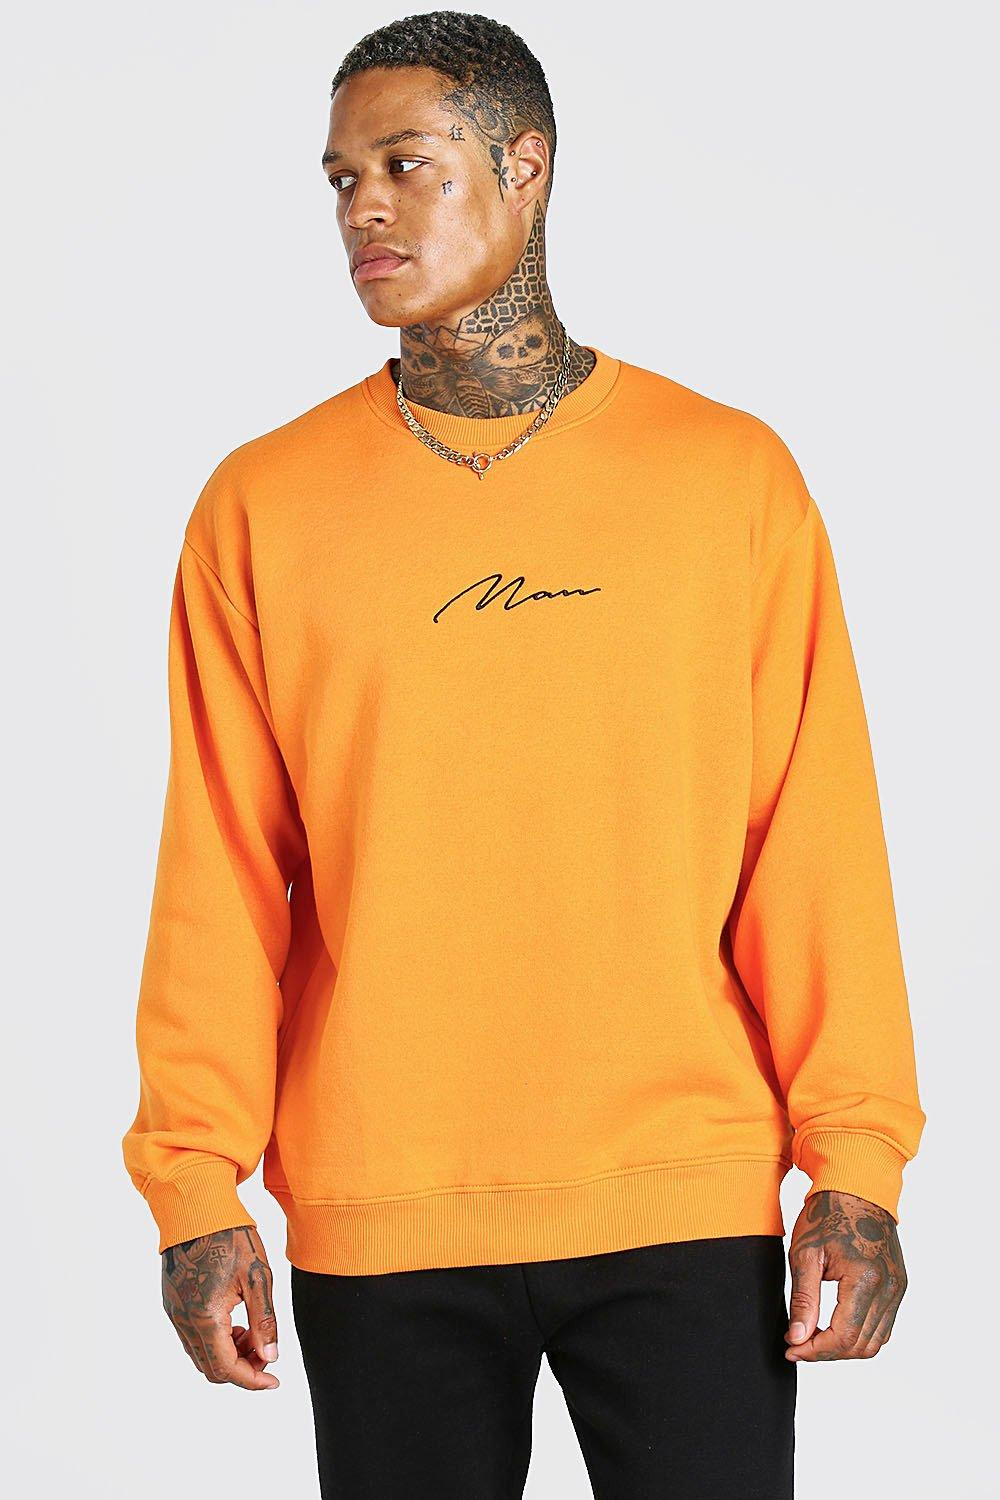 mens oversized man signature sweatshirt - orange